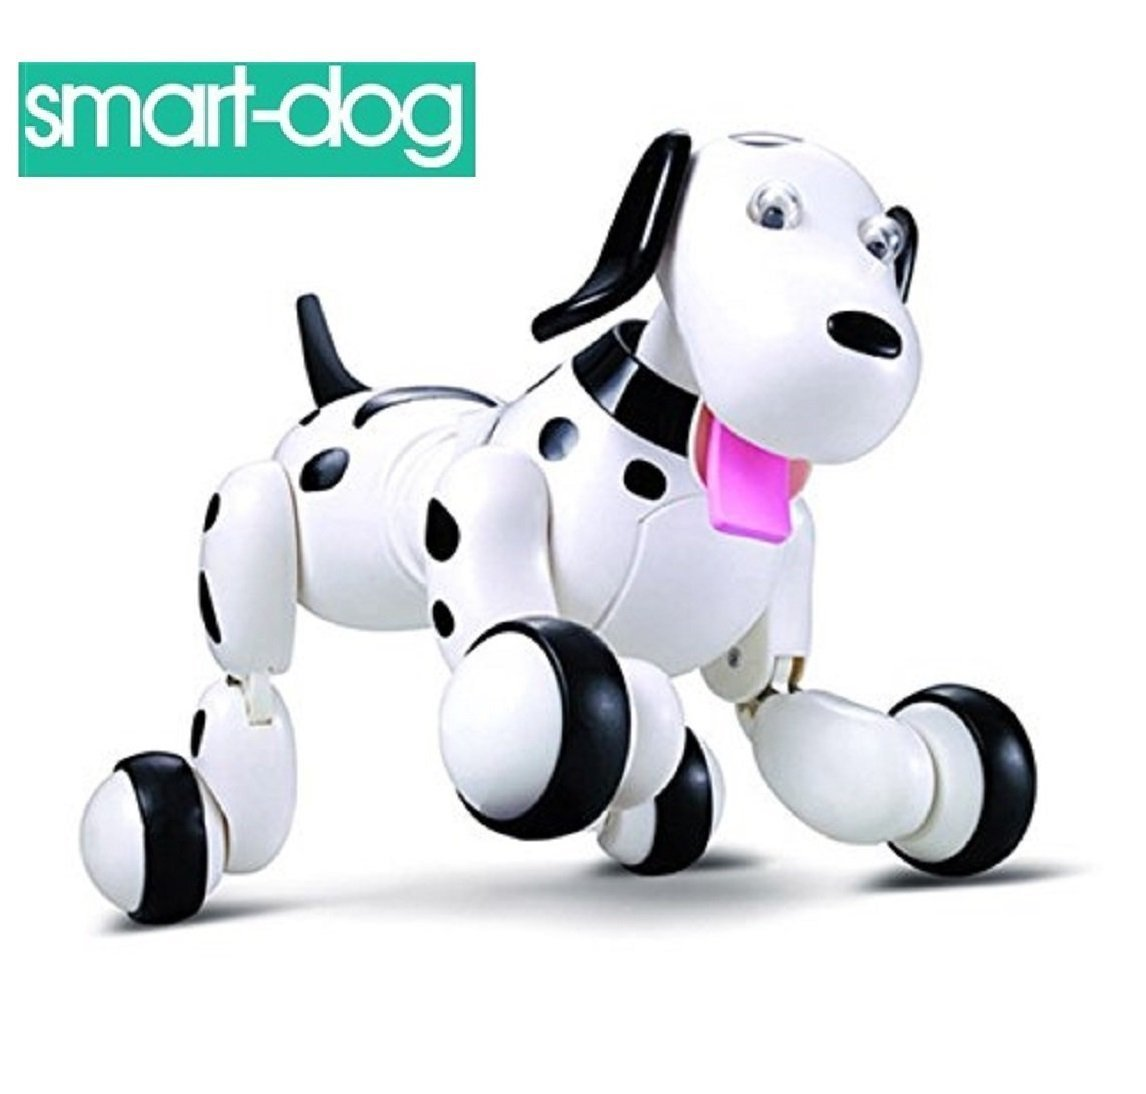 sainsmart-jr-electronic-rc-smart-dog